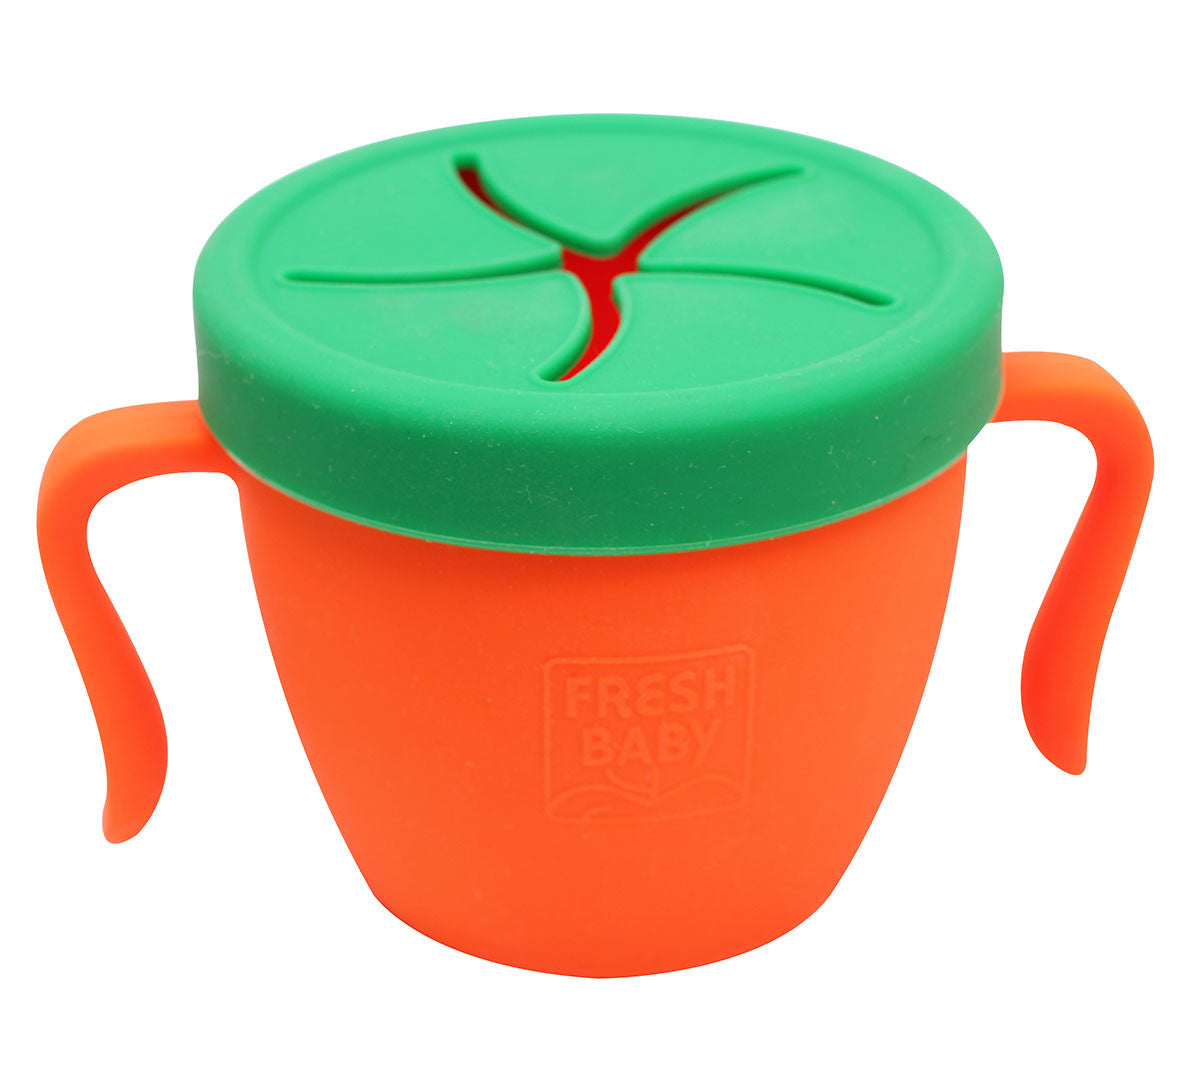 Fresh Baby's So Easy Snack Cup Fresh Baby's Snack Cup is a fun container for snacks at home or on the go. The soft silicone top has flaps for small fingers to reach snacks without worrying about spills.